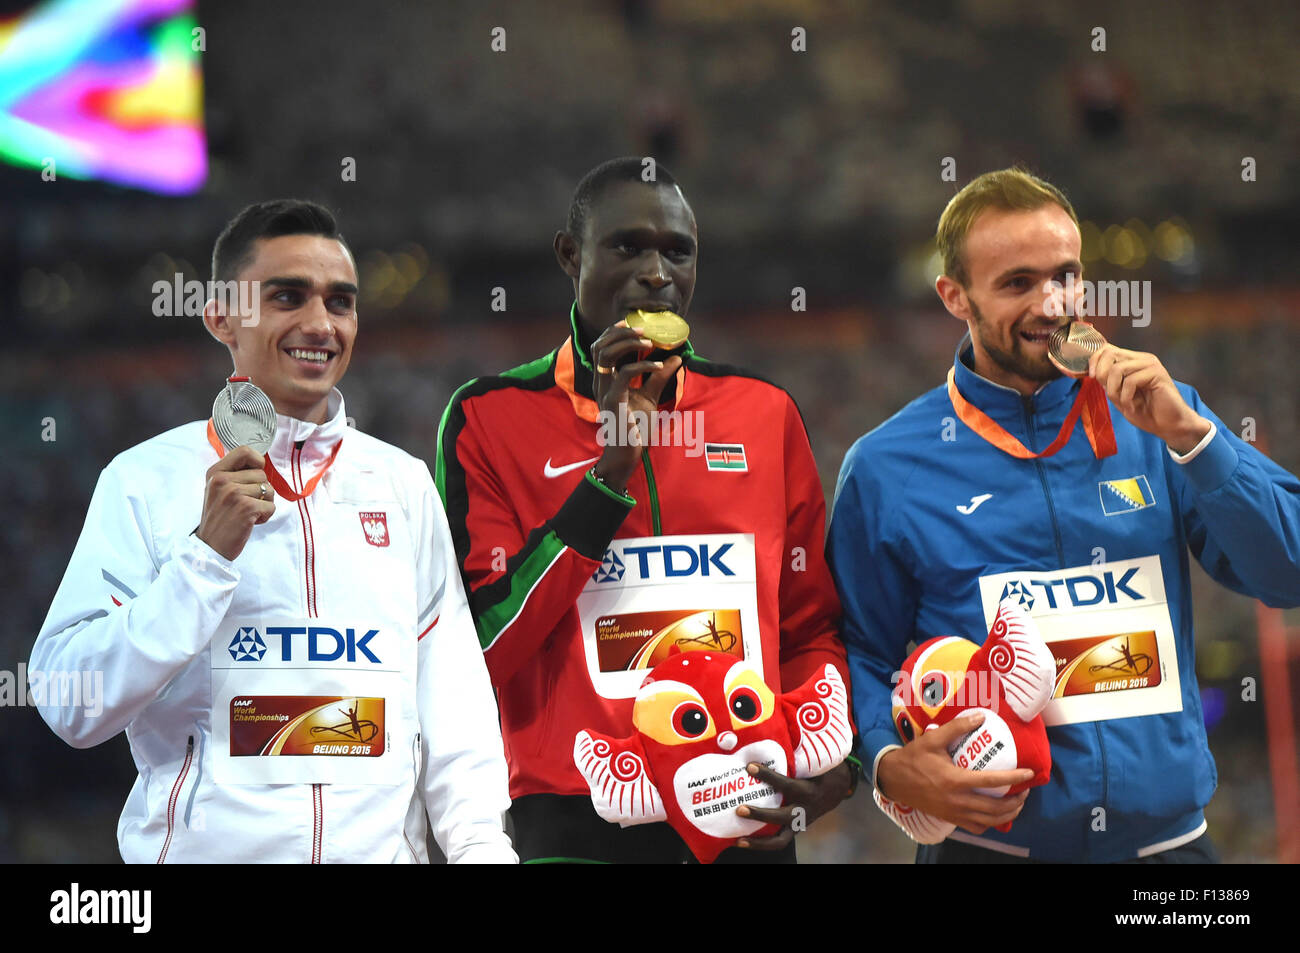 Beijing, China. 26th Aug, 2015. Gold medalist Kenya's David Lekuta Rudisha (C), silver medalist Poland's - Stock Image